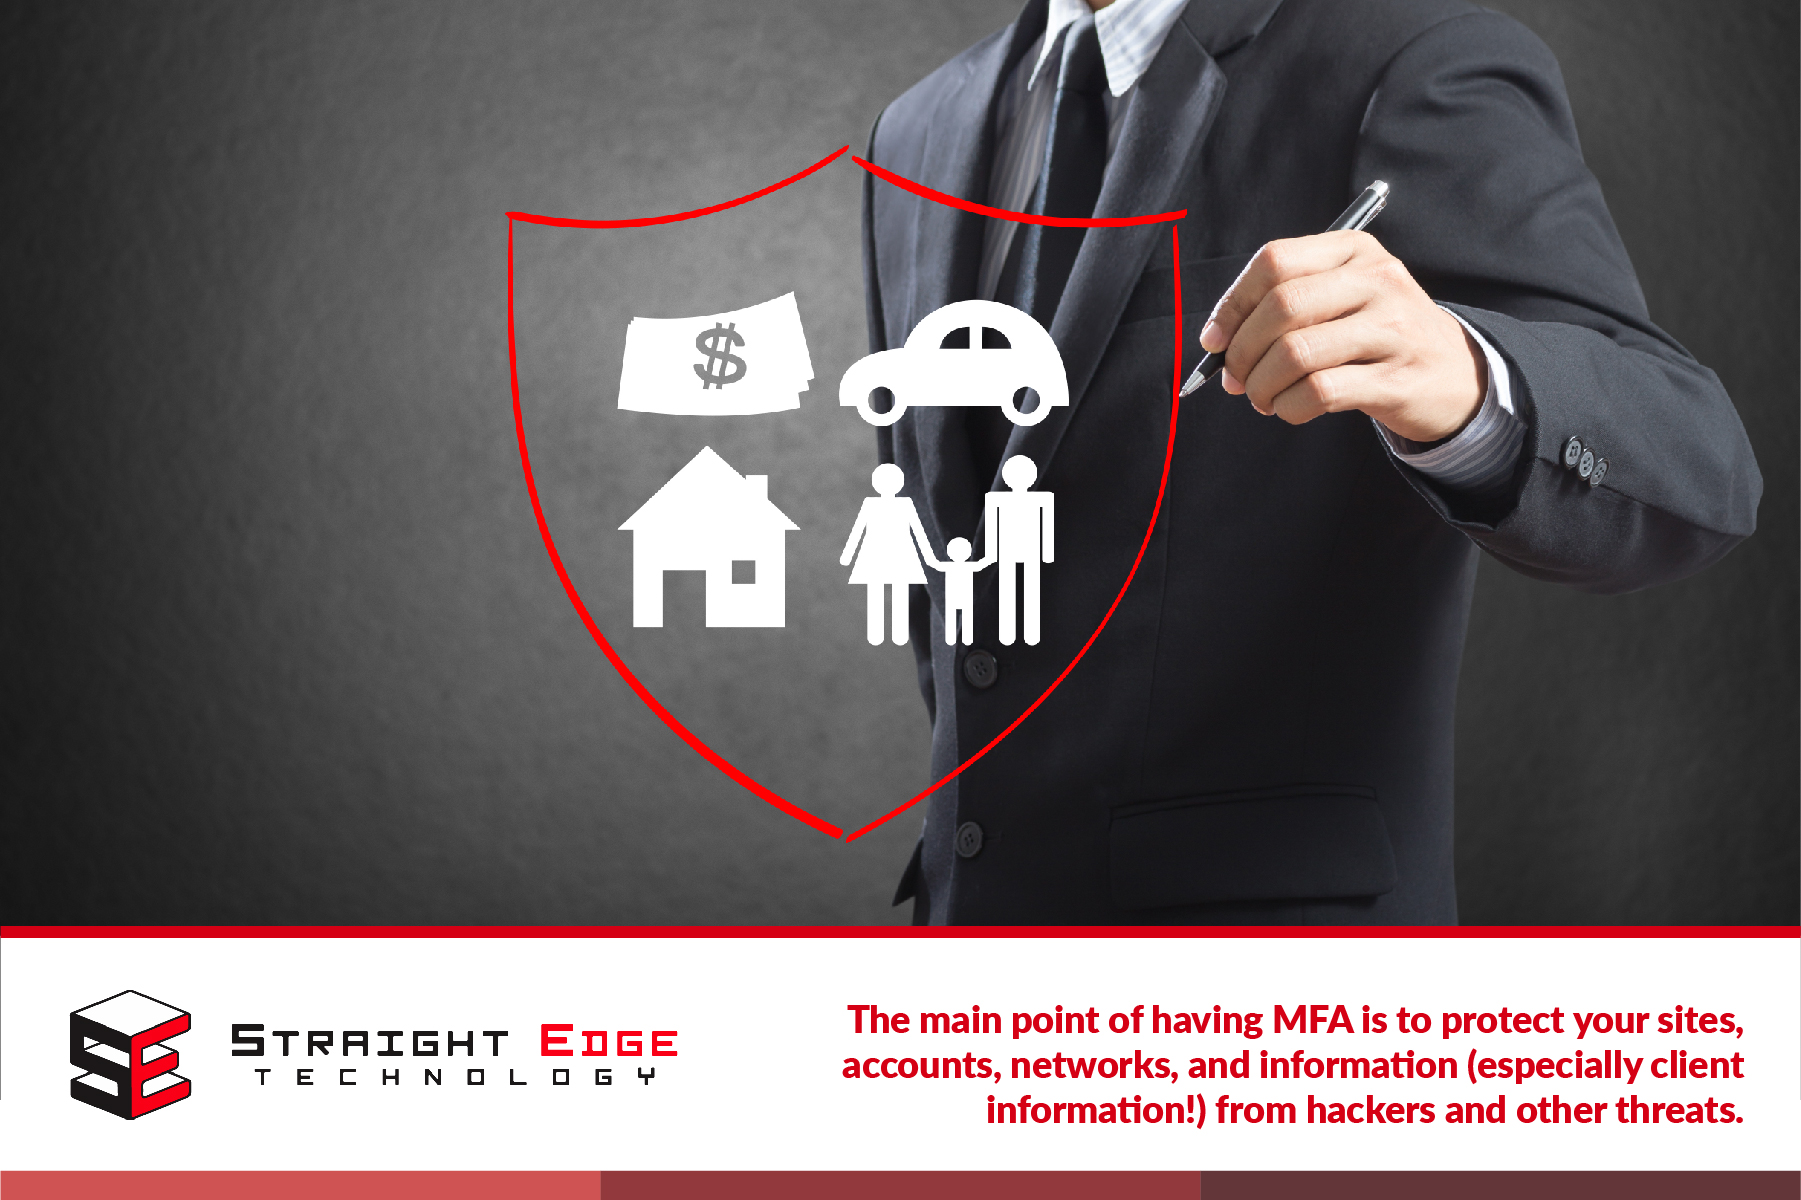 MFA protects sites, accounts, networks, and information